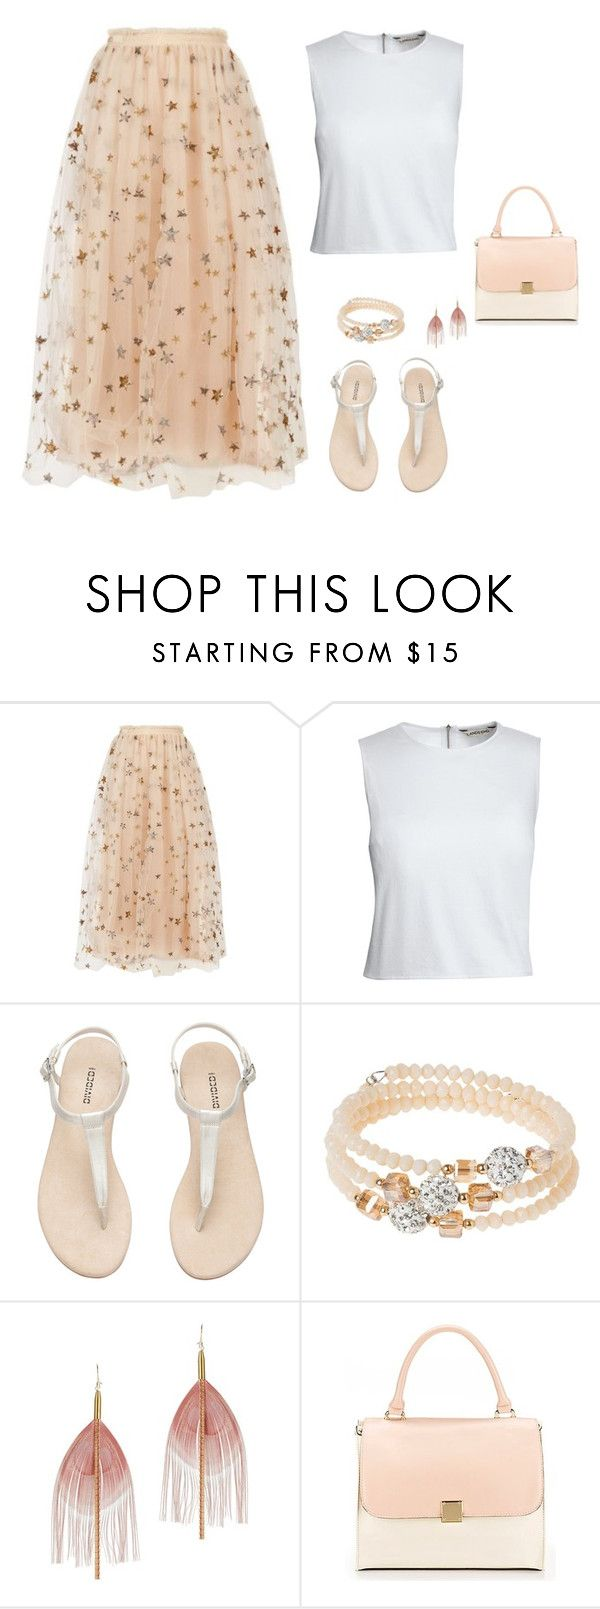 """""""set4"""" by maryam91-467 ❤ liked on Polyvore featuring Valentino, Canvas by Lands' End, H&M, sweet deluxe and Serefina"""